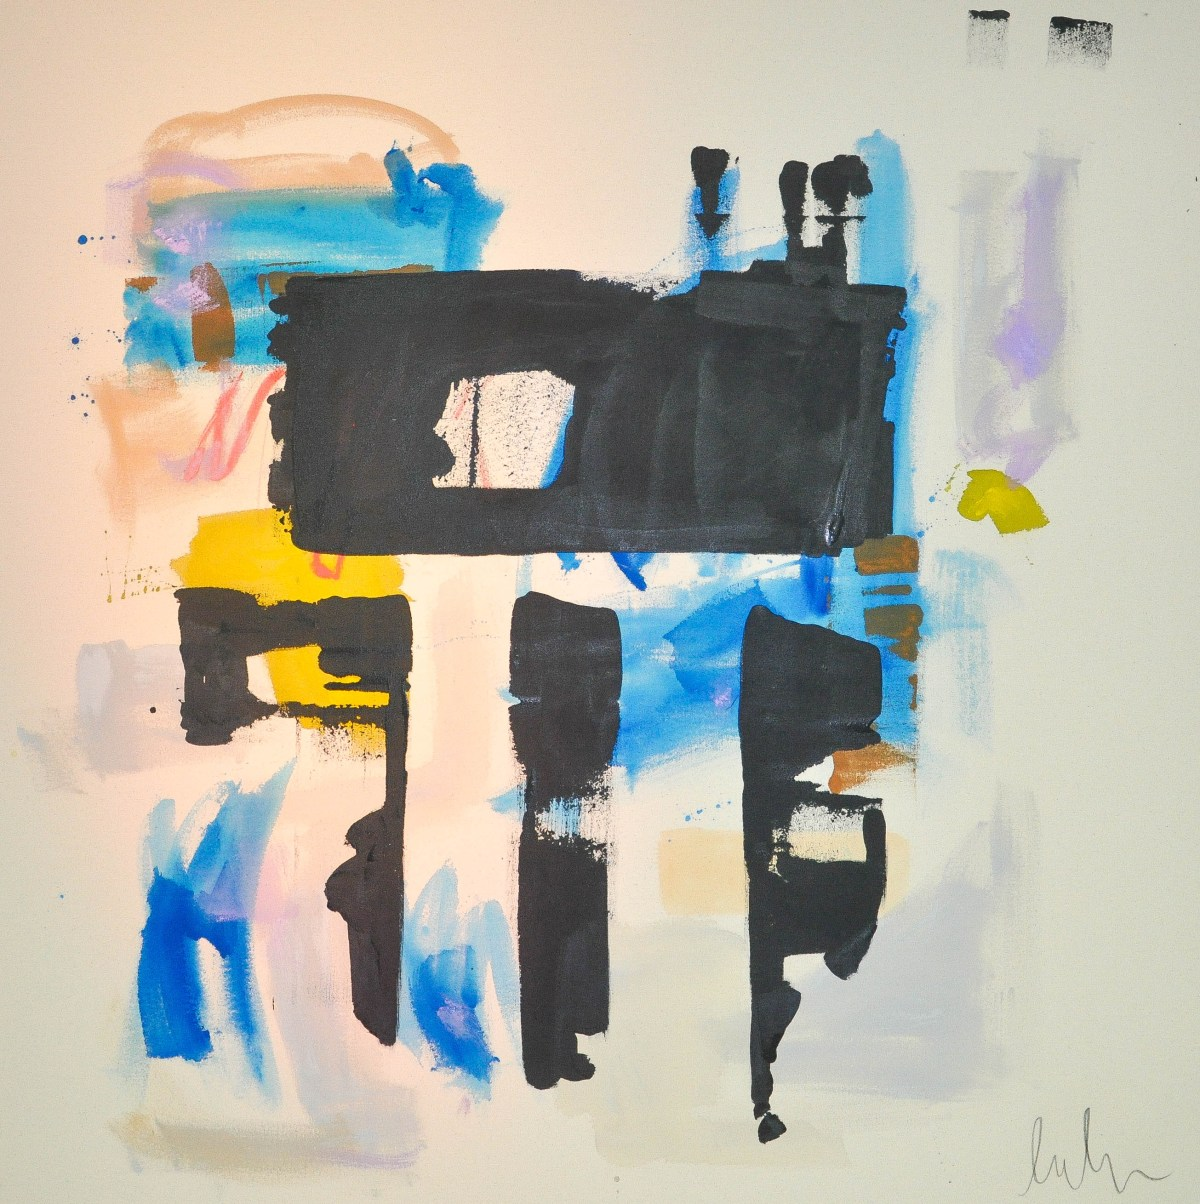 A painting by Laura Deems reminds one of looking at a Rorschach test with its prominent black gestural markings painted against a background of softer colors.